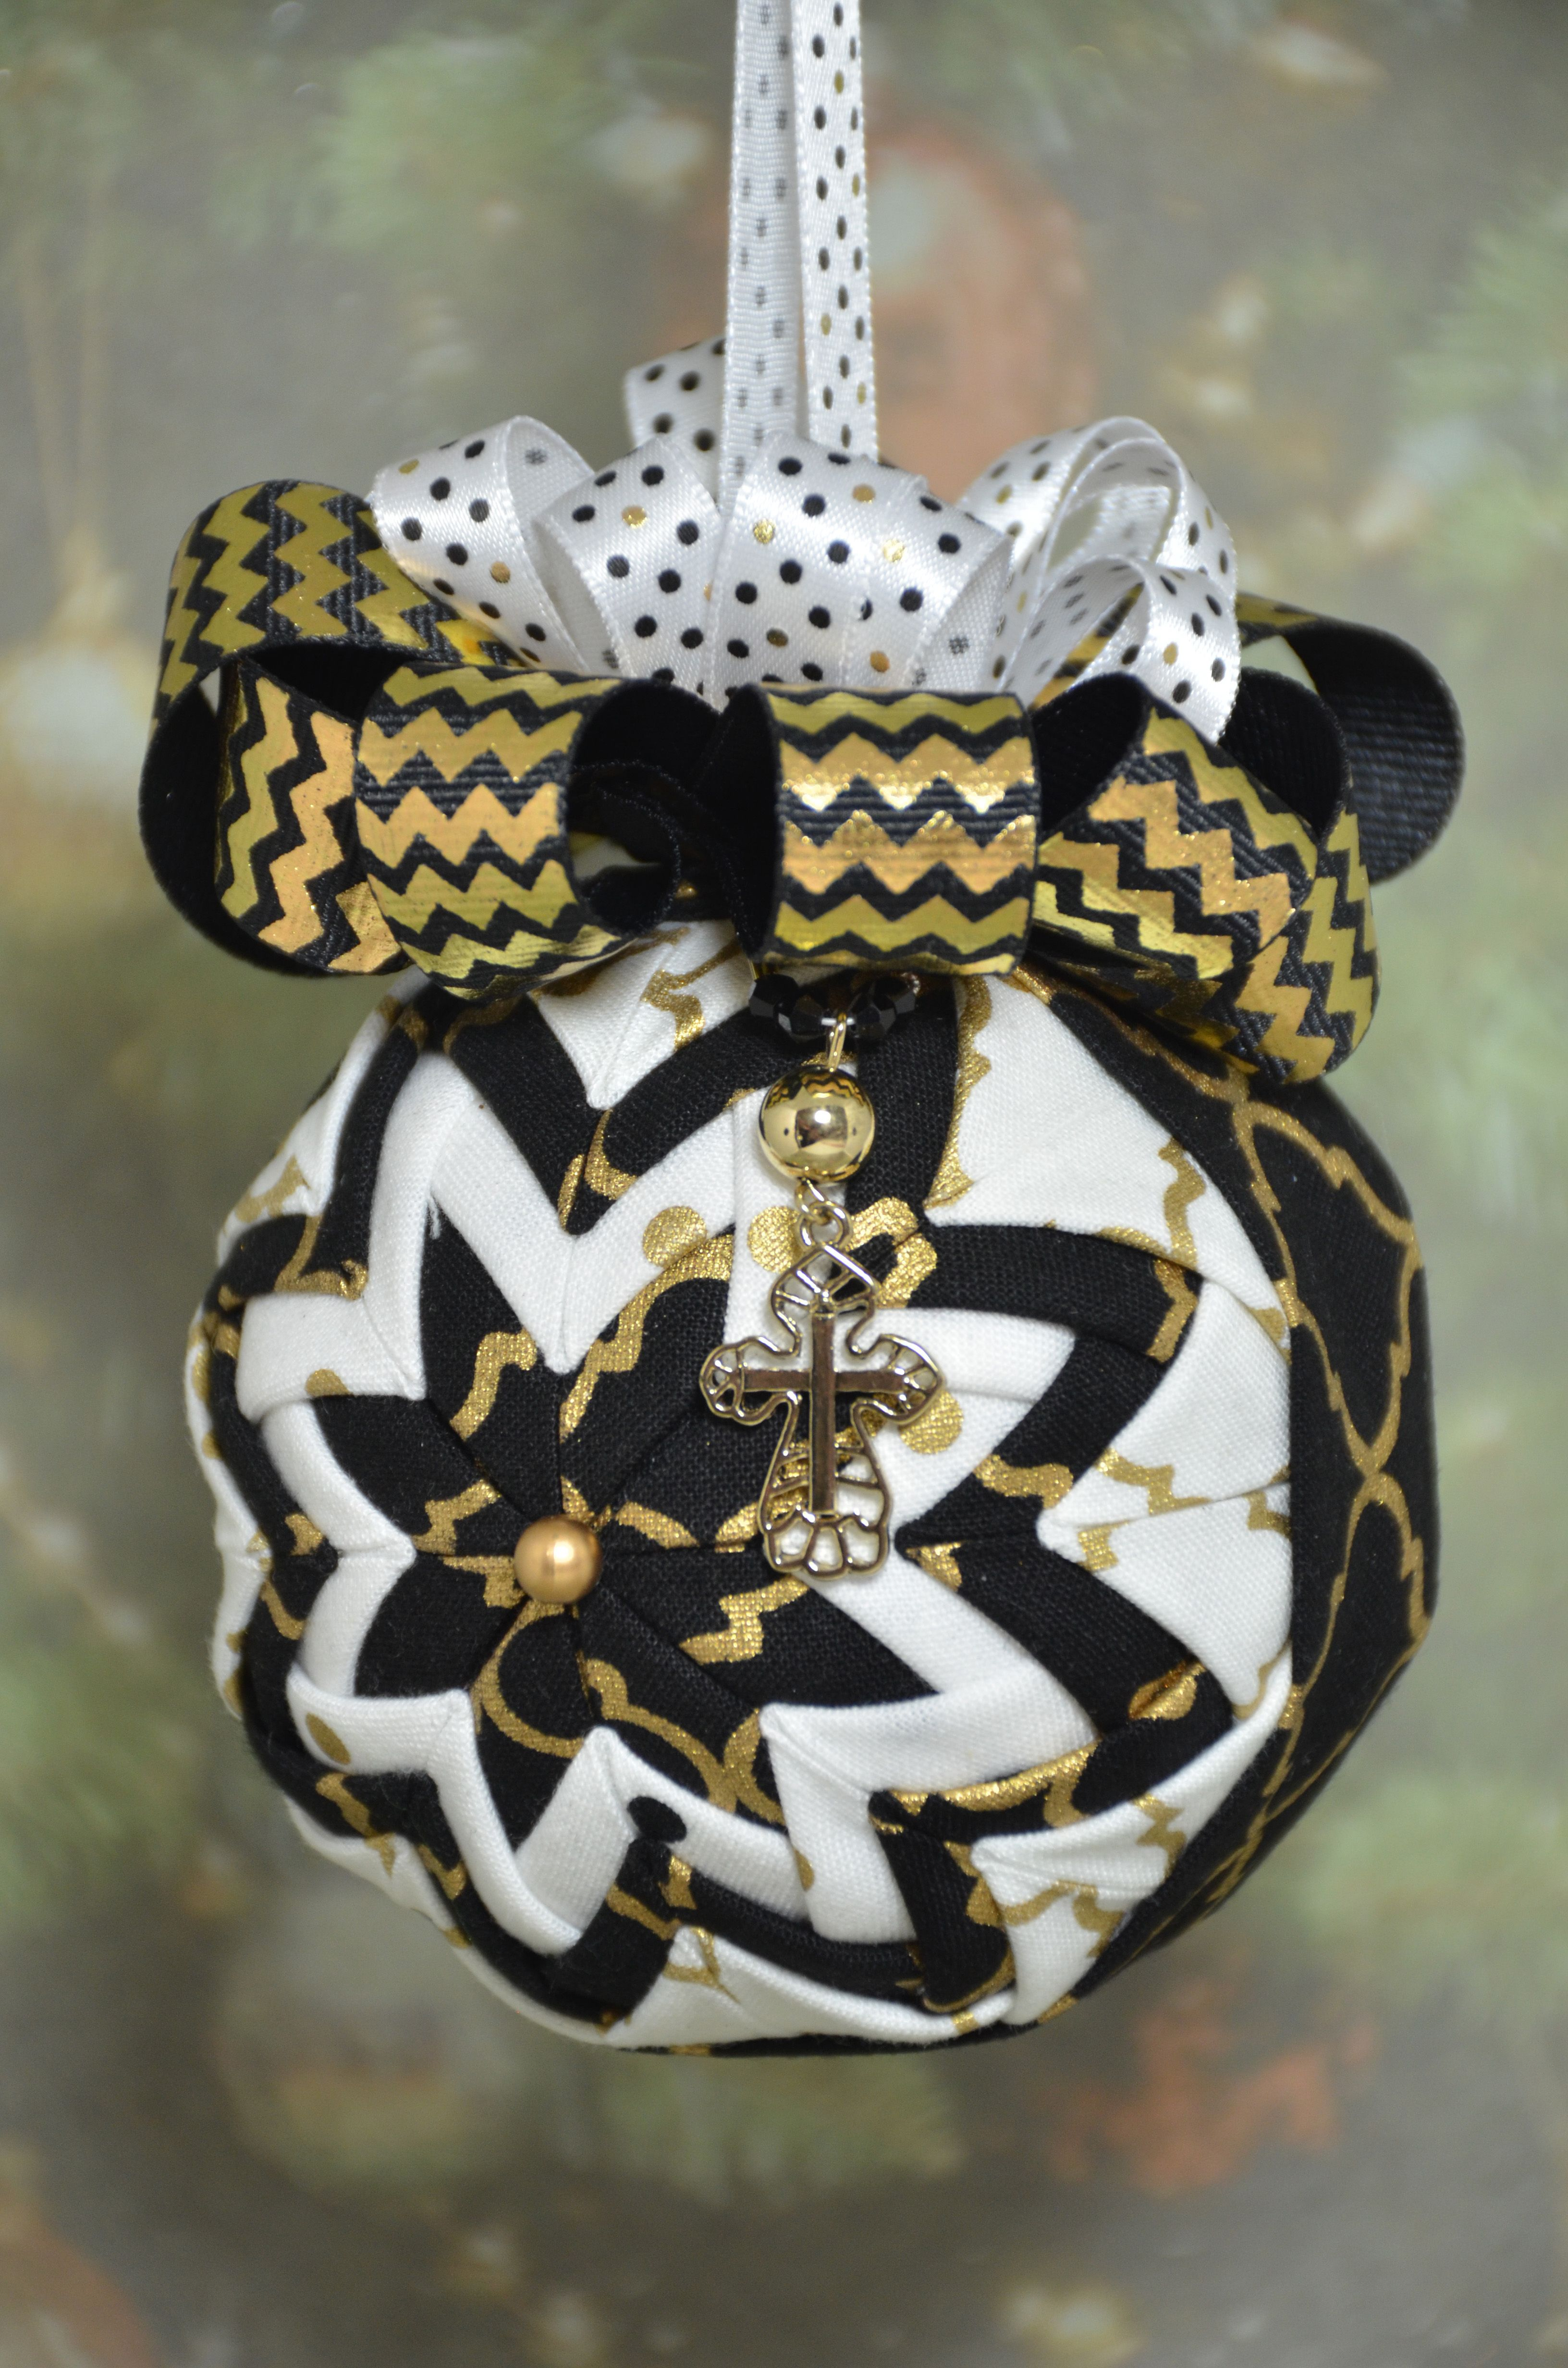 handmade no sew quilted ornament in black gold and white with cross charm - Black And Gold Christmas Ornaments